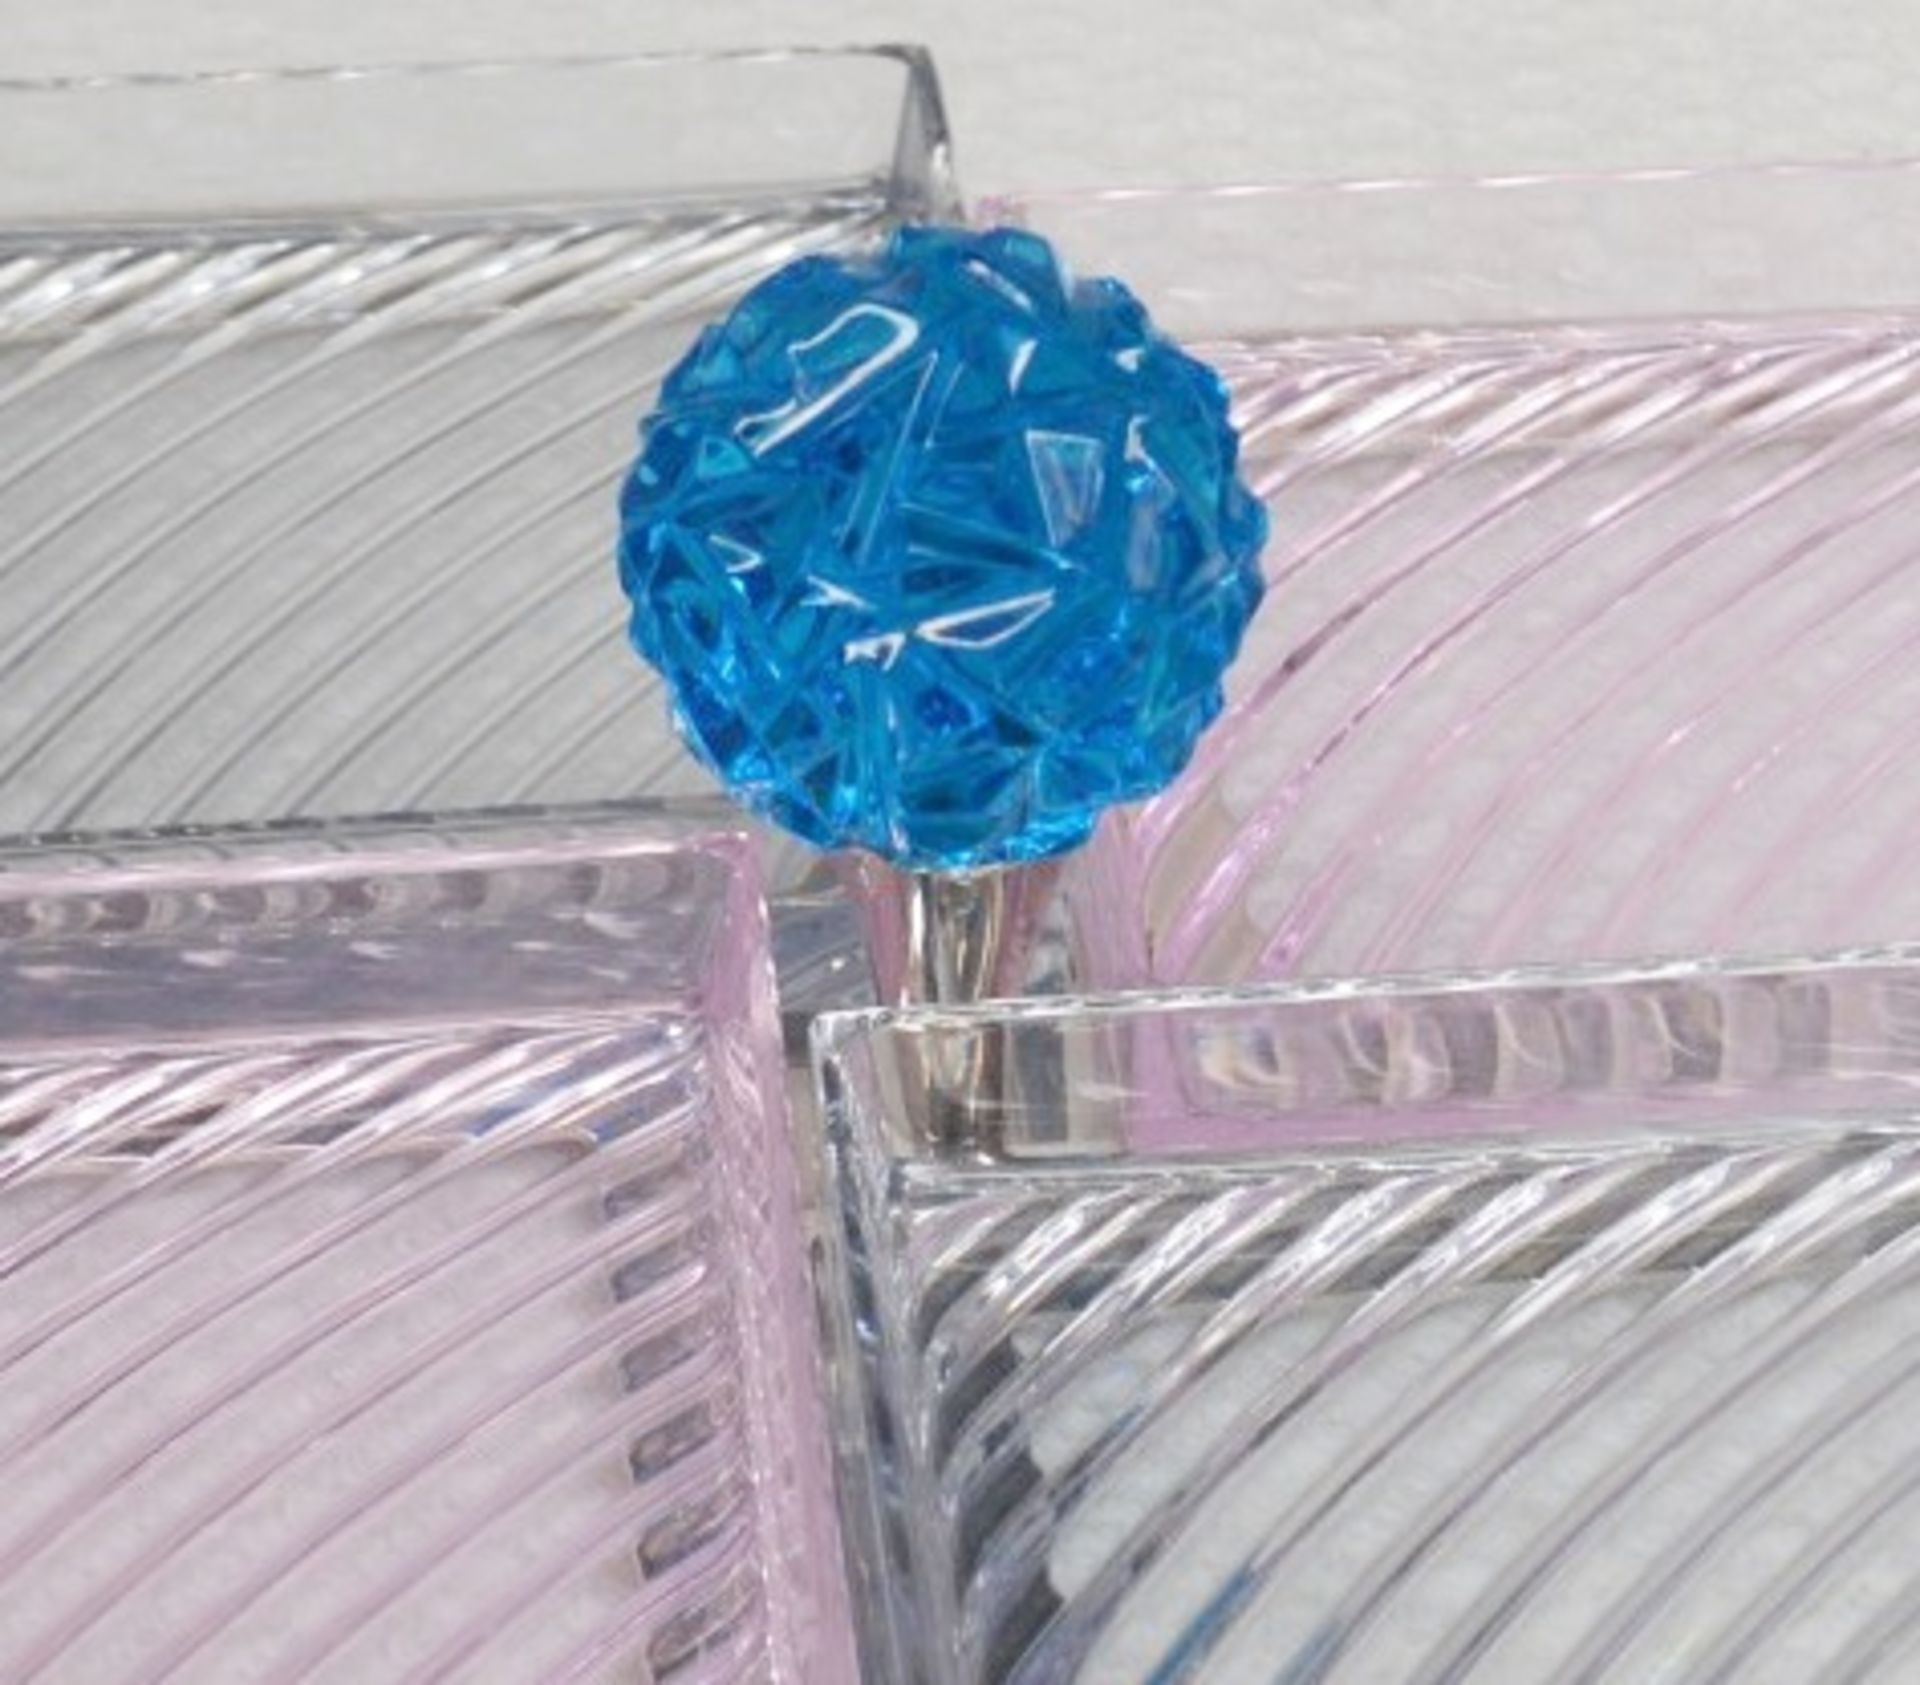 1 x BALDI 'Home Jewels' Italian Hand-crafted Artisan Glass 4-Dish Serving Trays In Smoke And Pink - Image 3 of 3